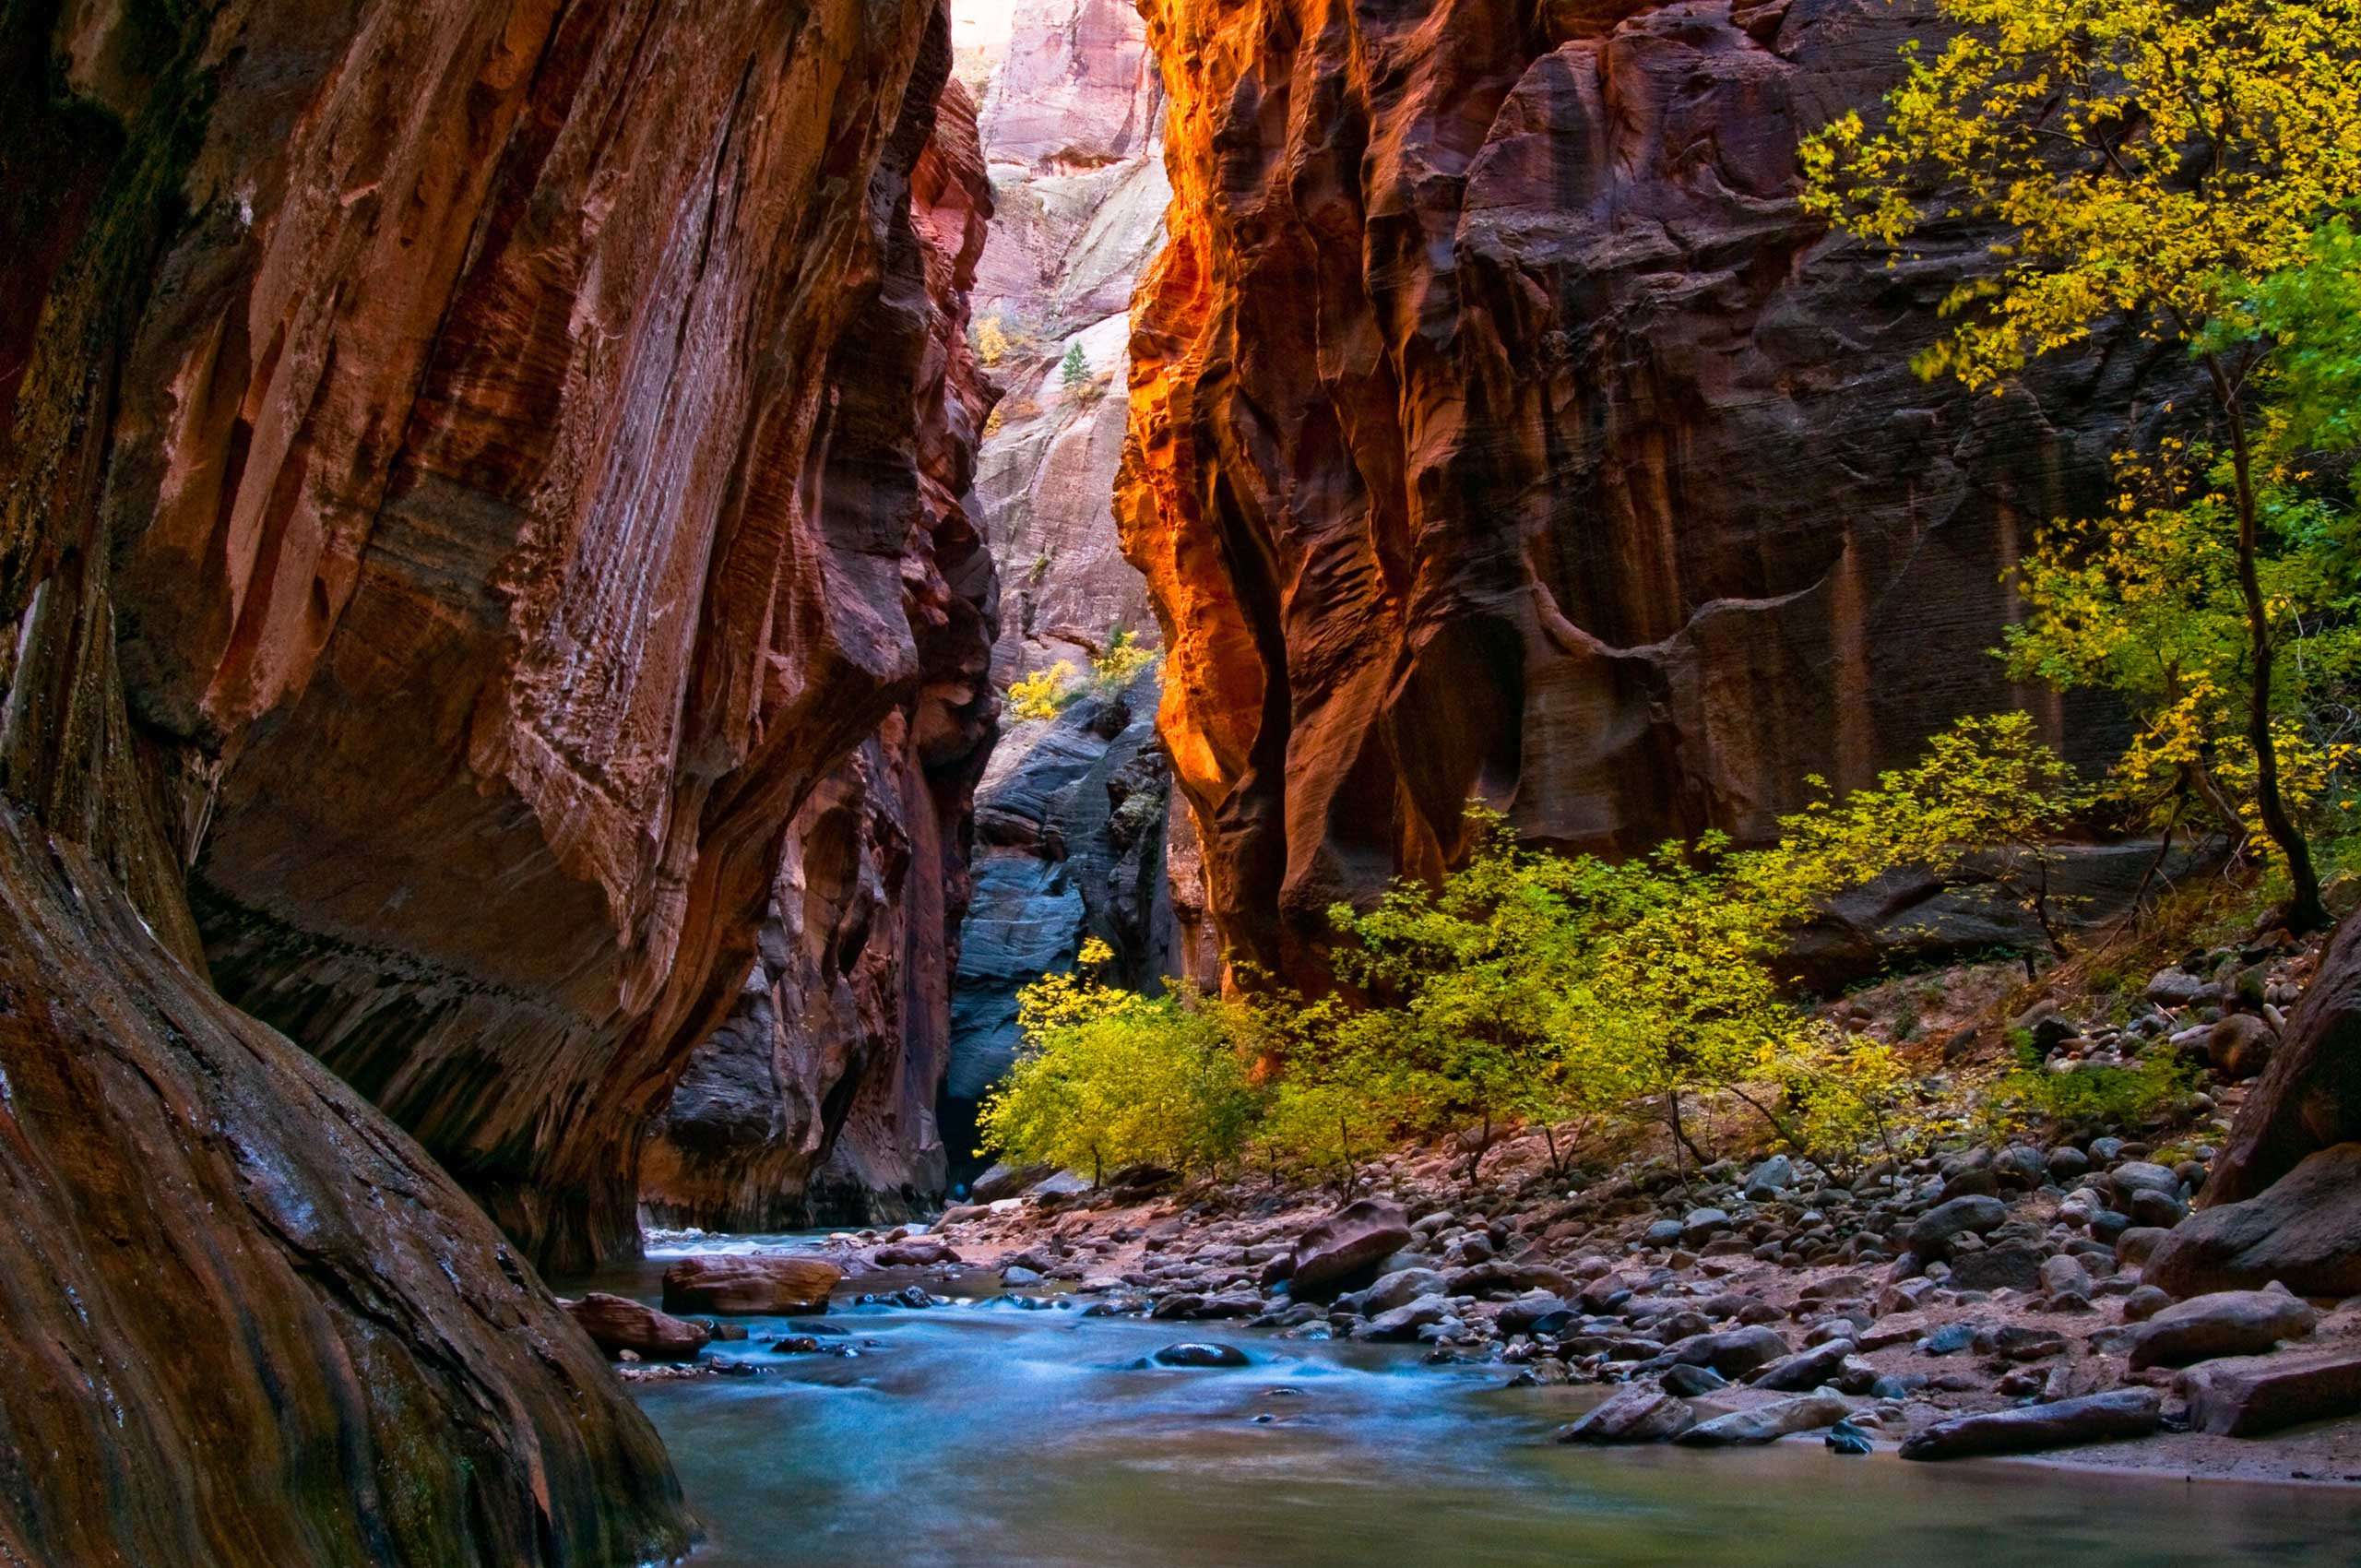 A gorgeous photo of the changing fall colors in Zion National Park (Utah). Kevin Roland captured this shot at one of the park's most popular areas -- the Narrows, a gorge with wall a thousand feet tall.